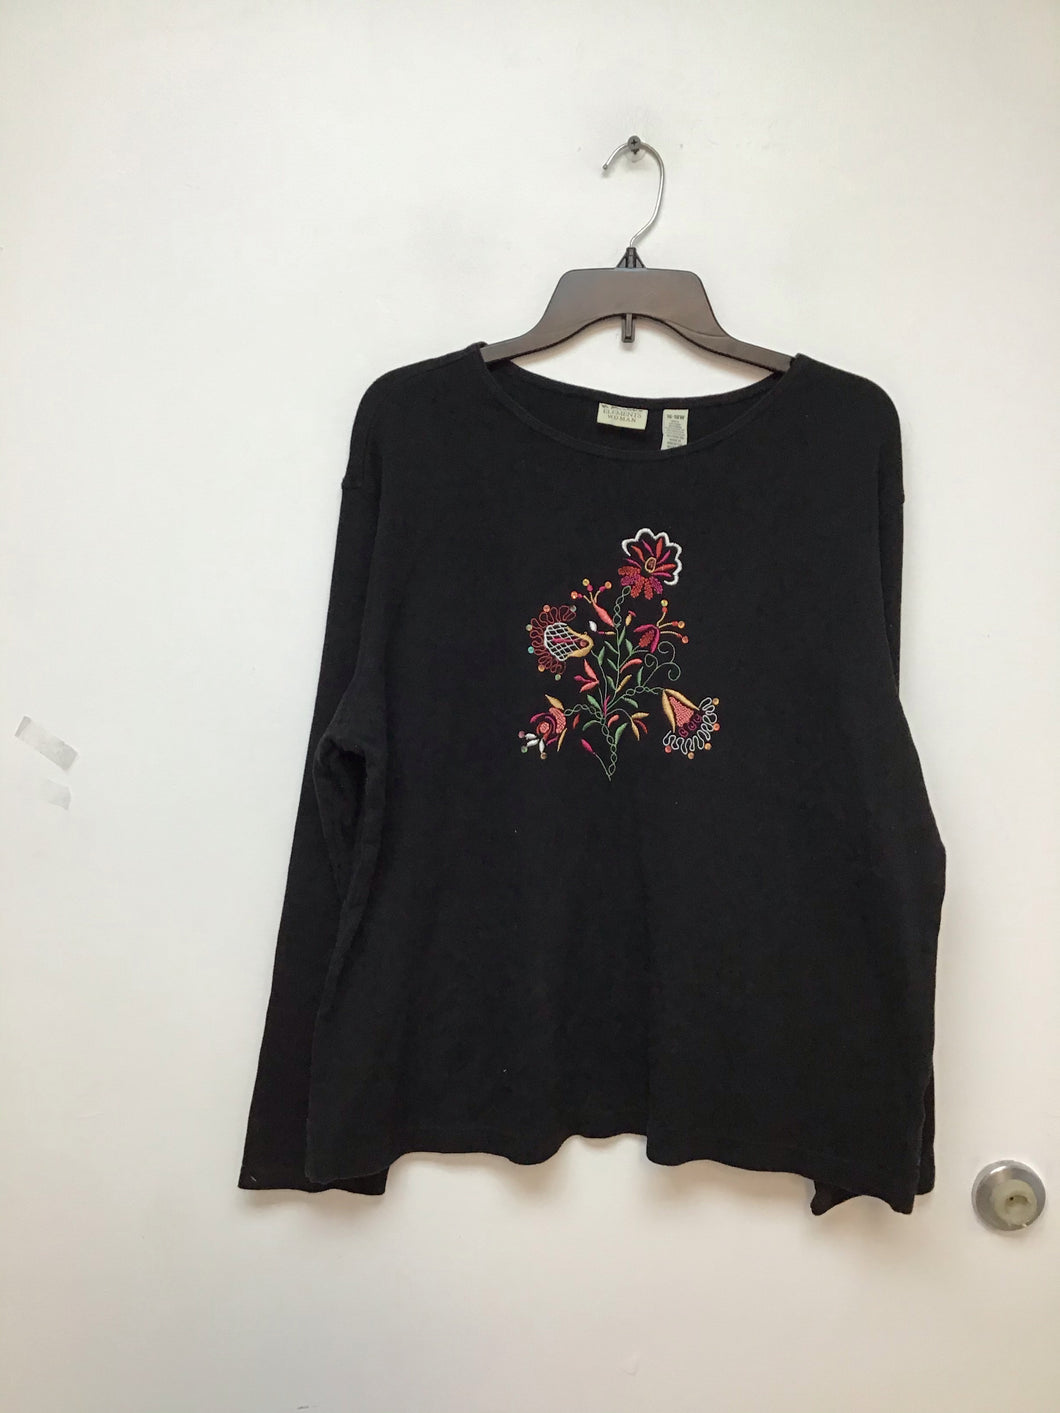 Elements woman black long sleeve shirt with floral print size 18/20w